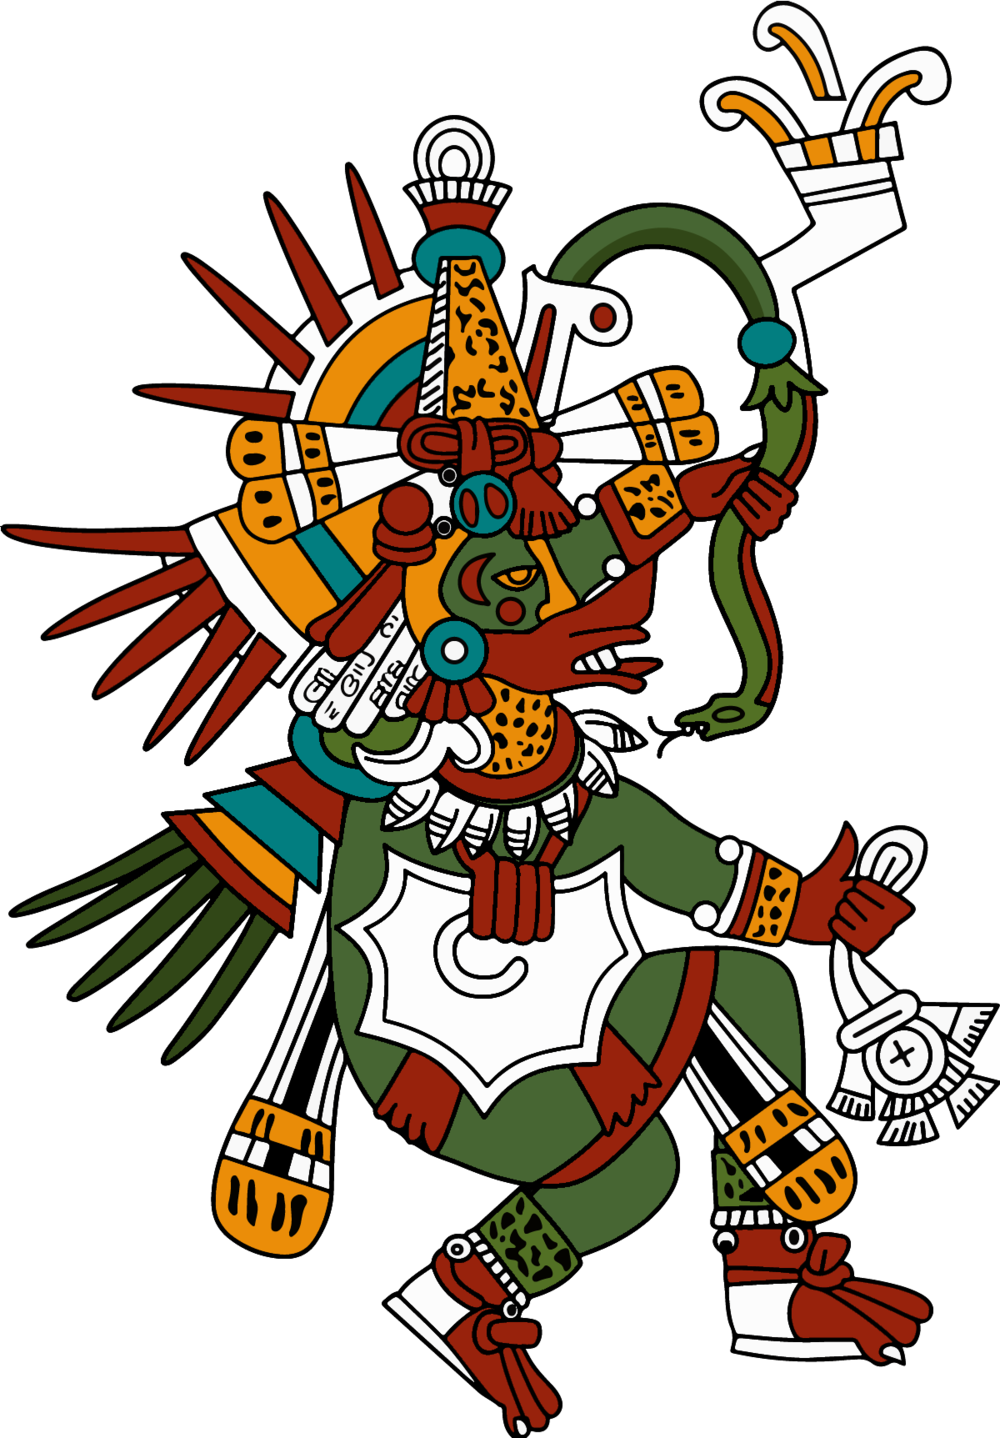 Quetzalcoatl - The symbol of spirituality, precious knowledge, and the Sun. The direction of East.